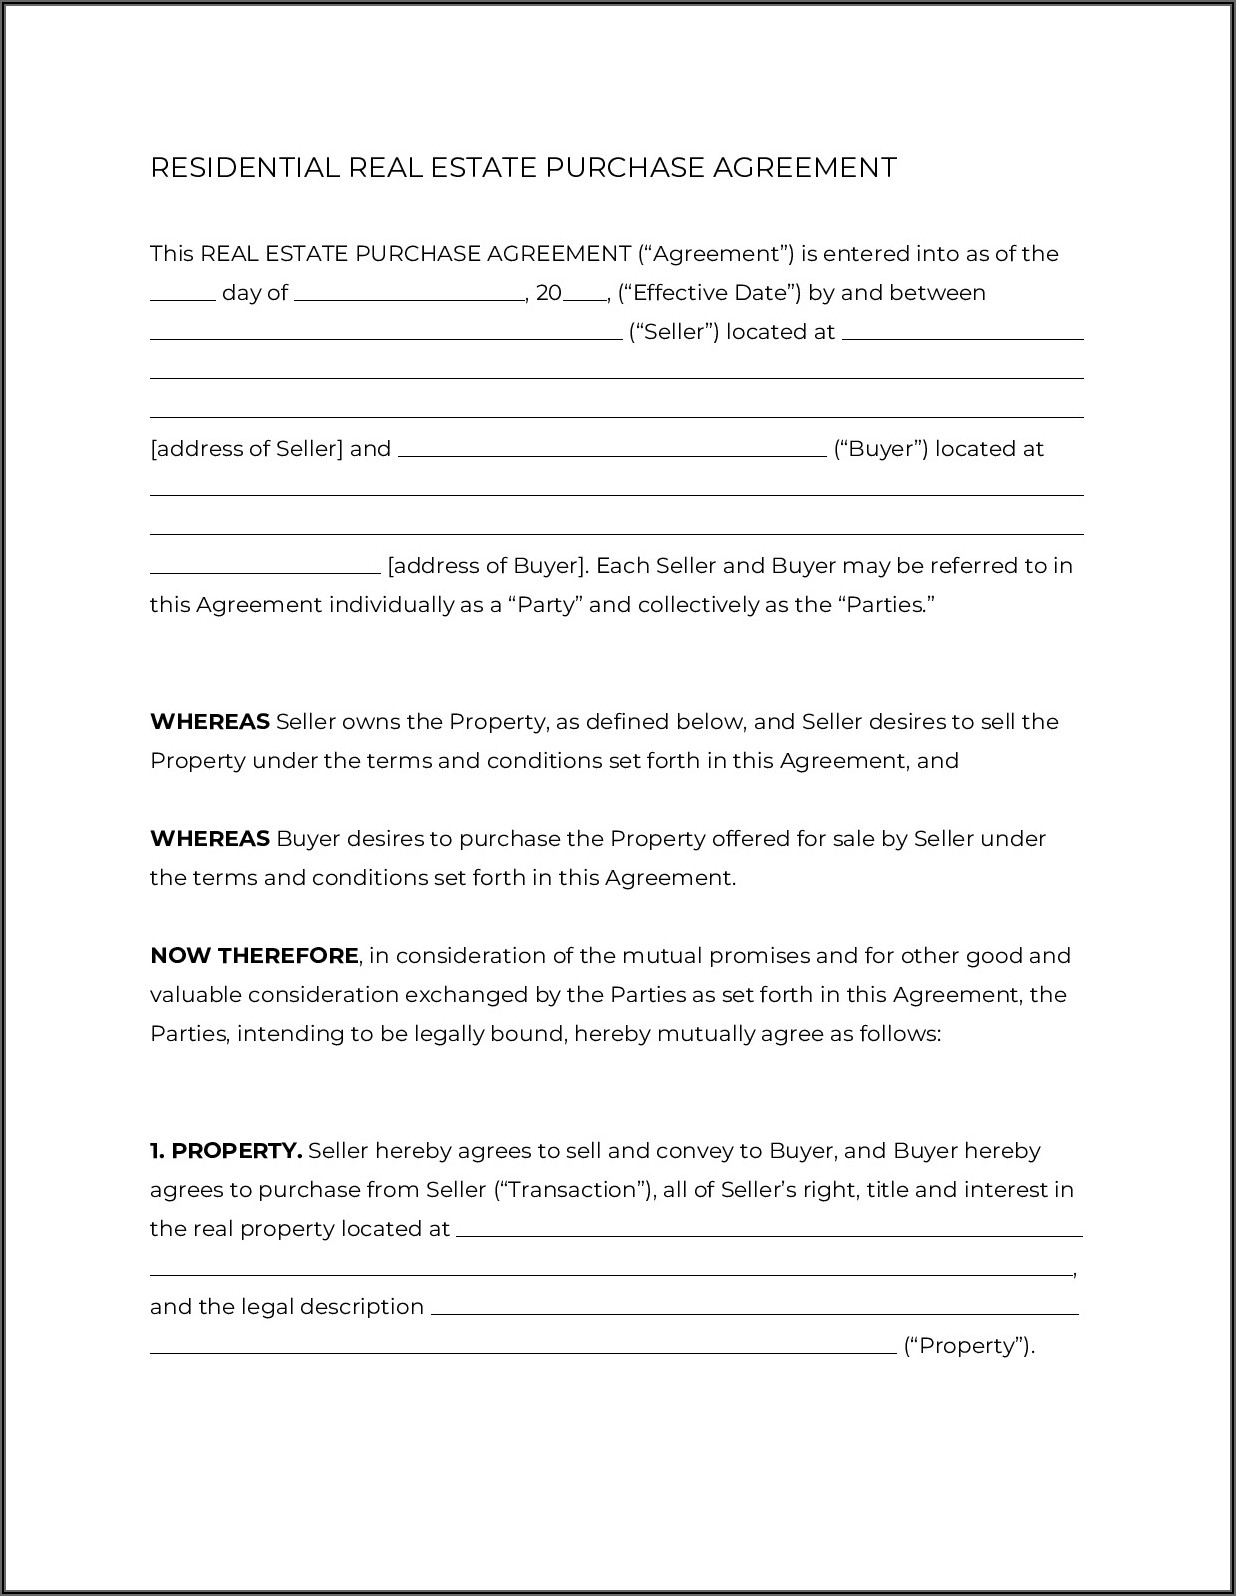 Florida Real Estate Contract Addendum Form